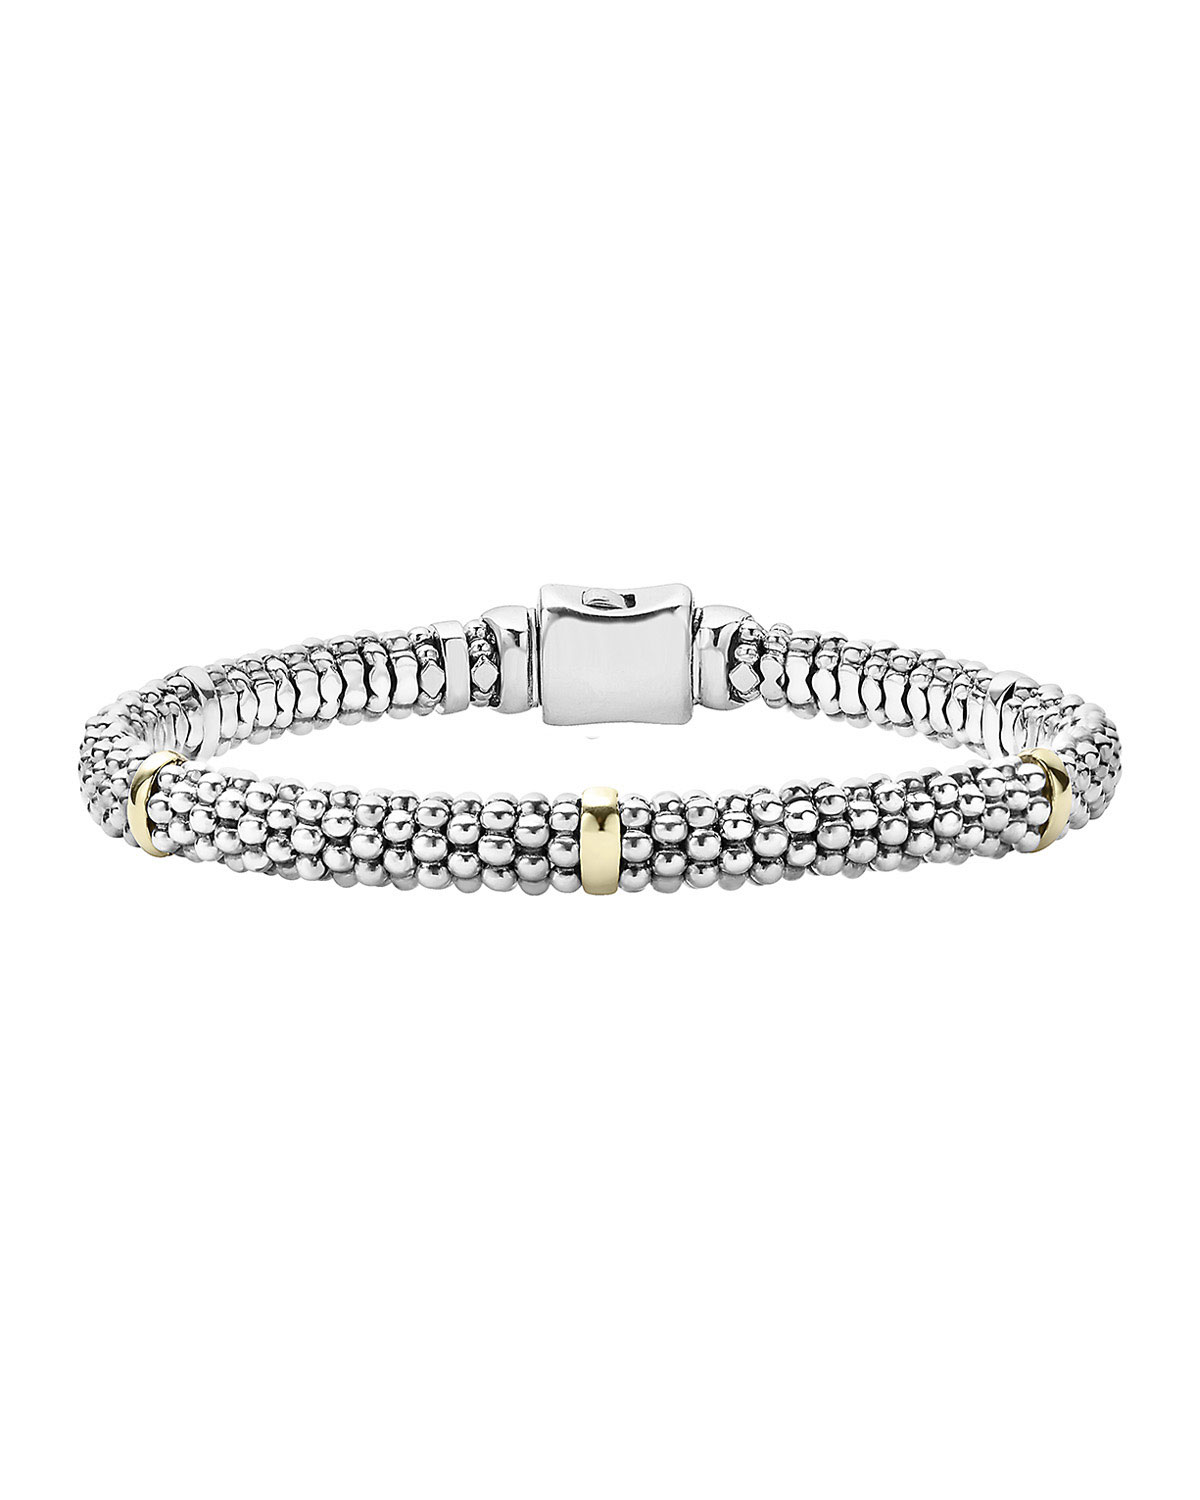 Lagos Signature Silver Caviar Bracelet with 18k Gold, 6mm